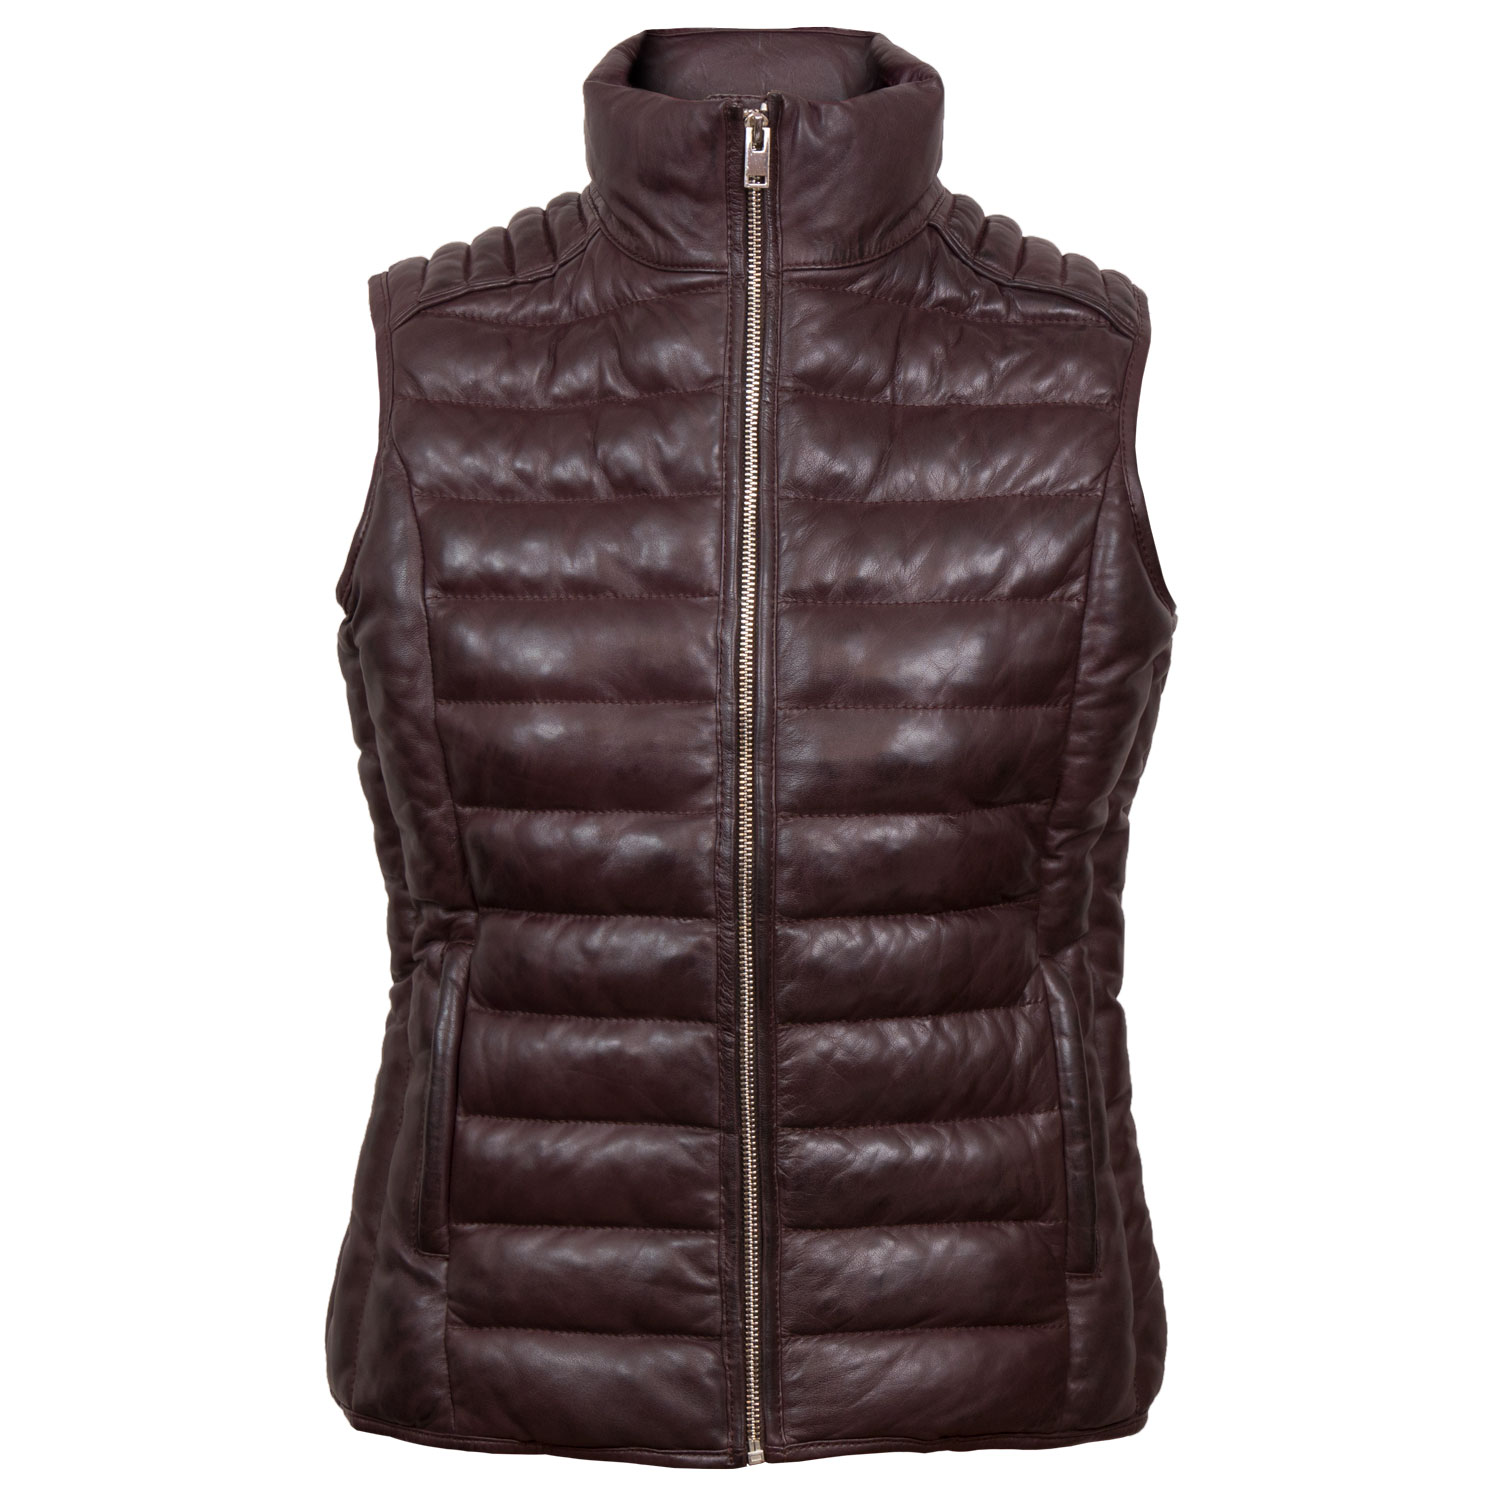 Cathy: Women's Burgundy Funnel Leather Gilet by Hidepark